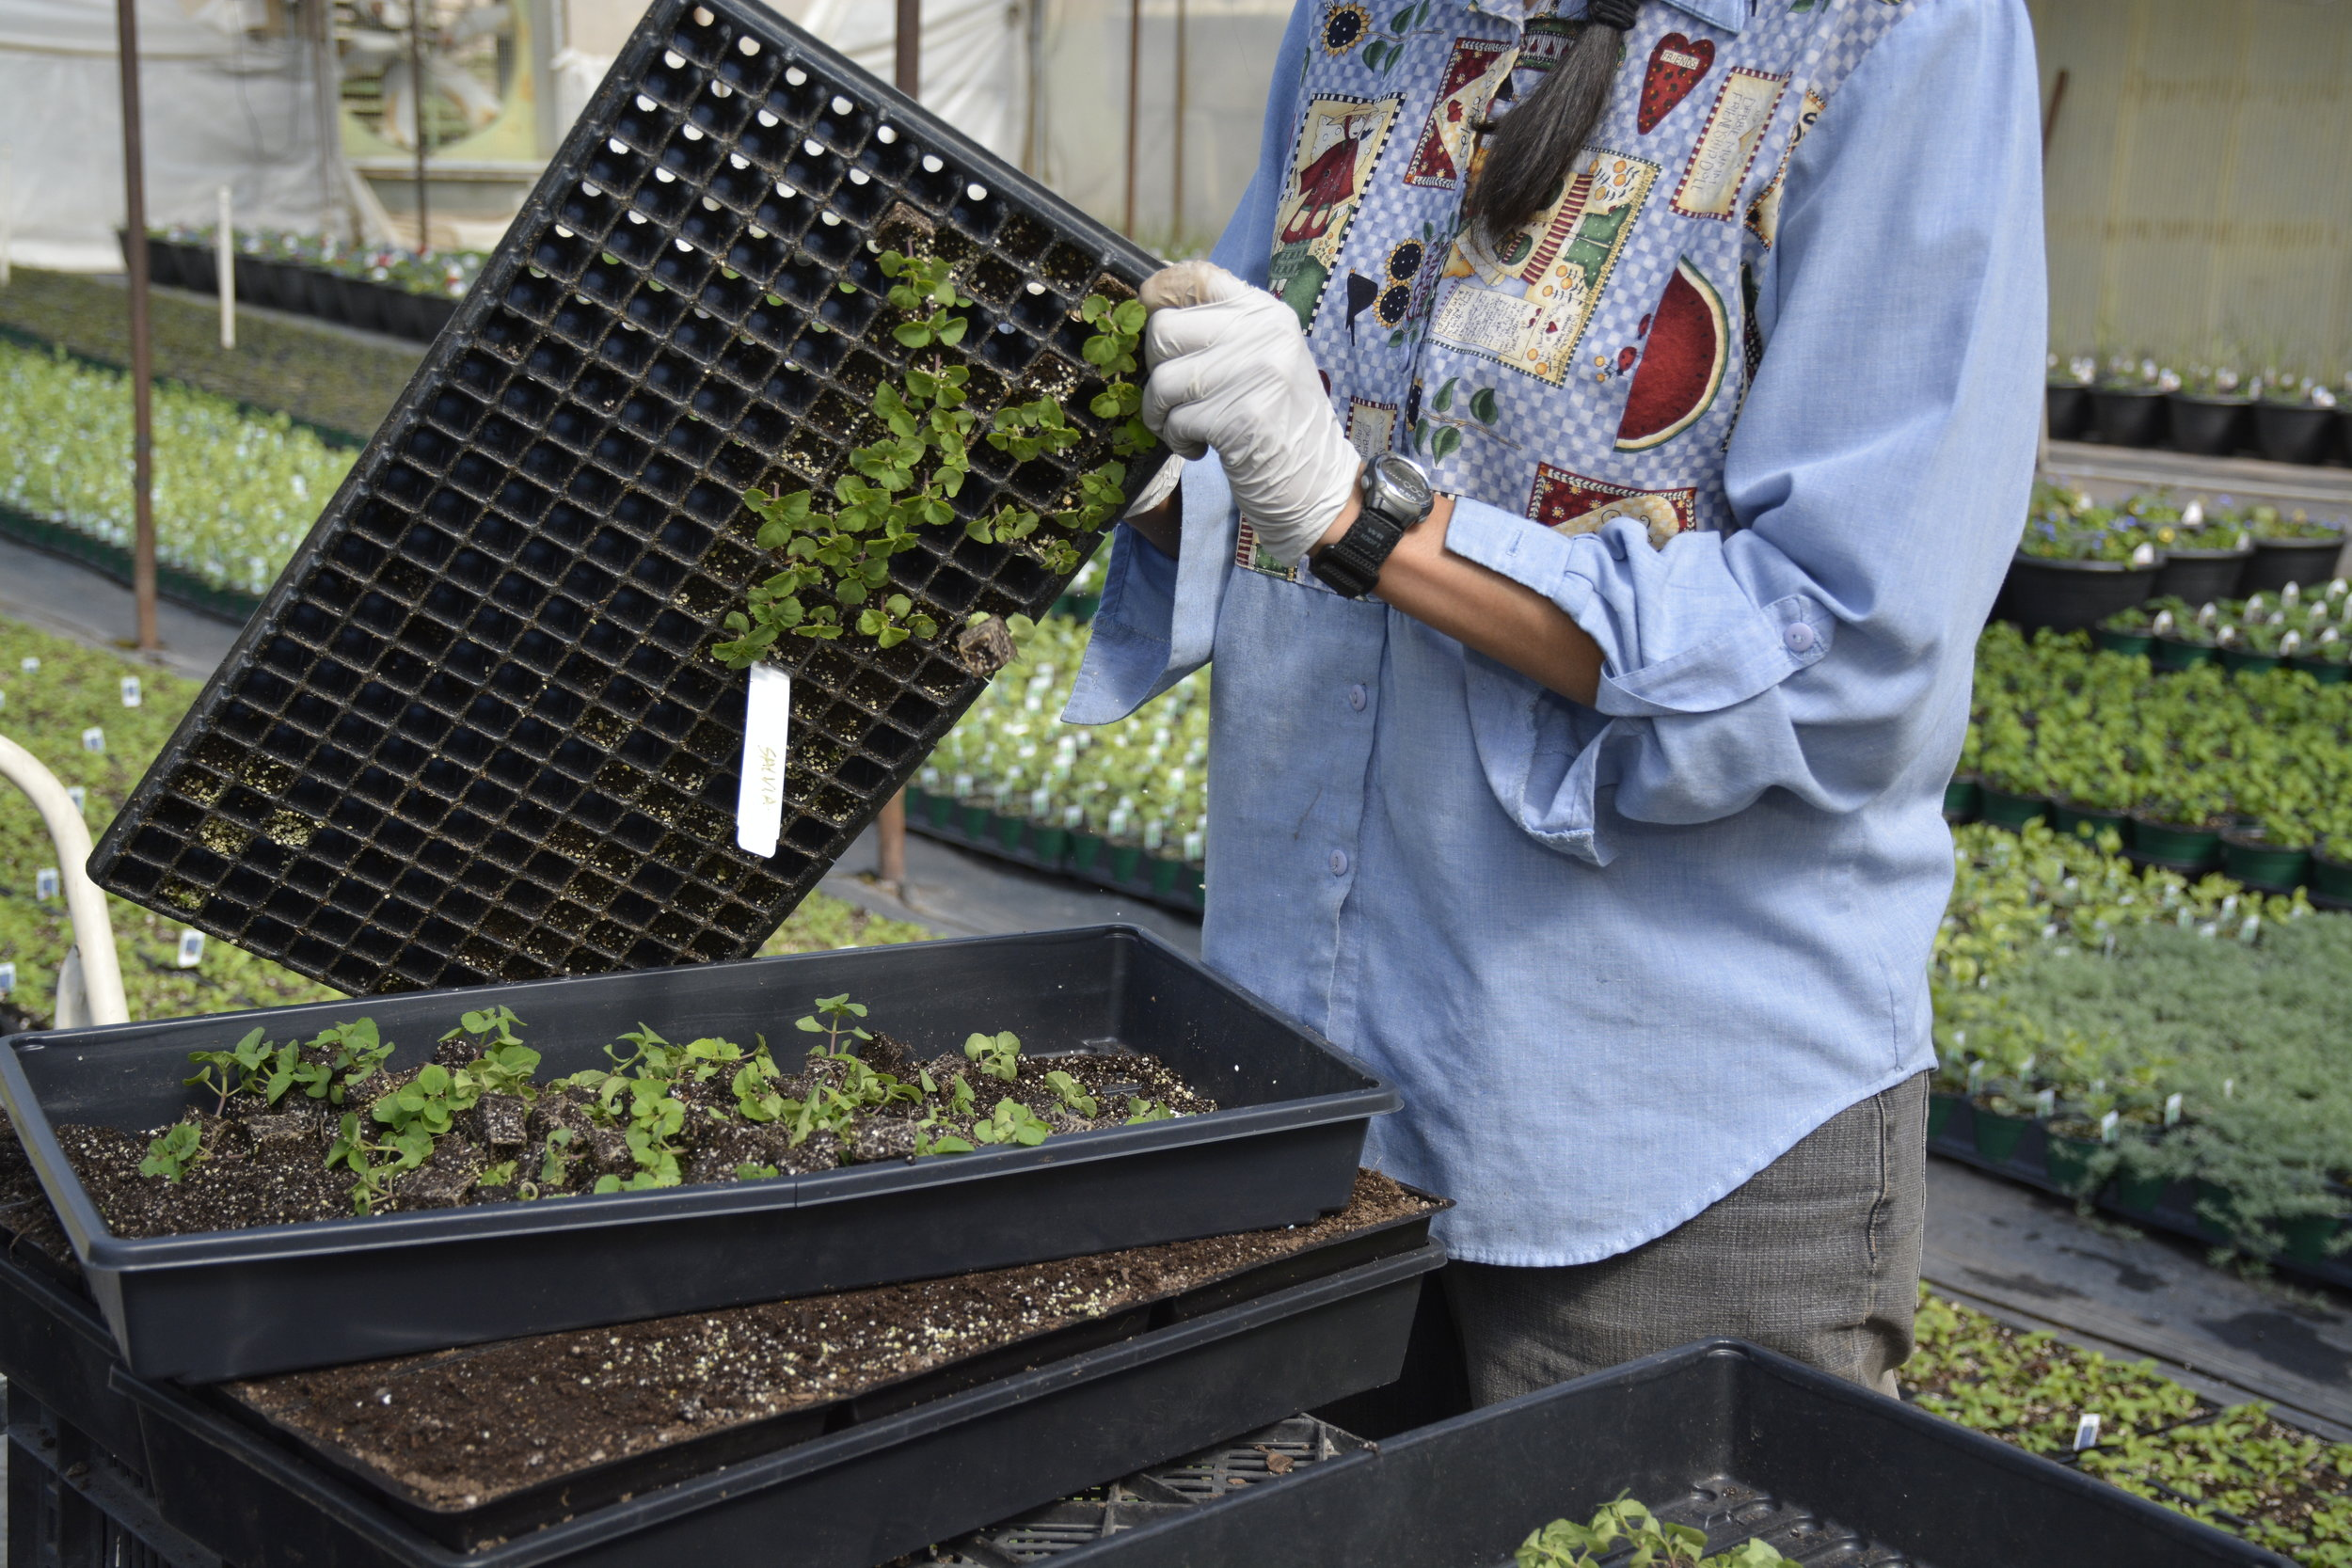 Popping out salvia starts for transplanting